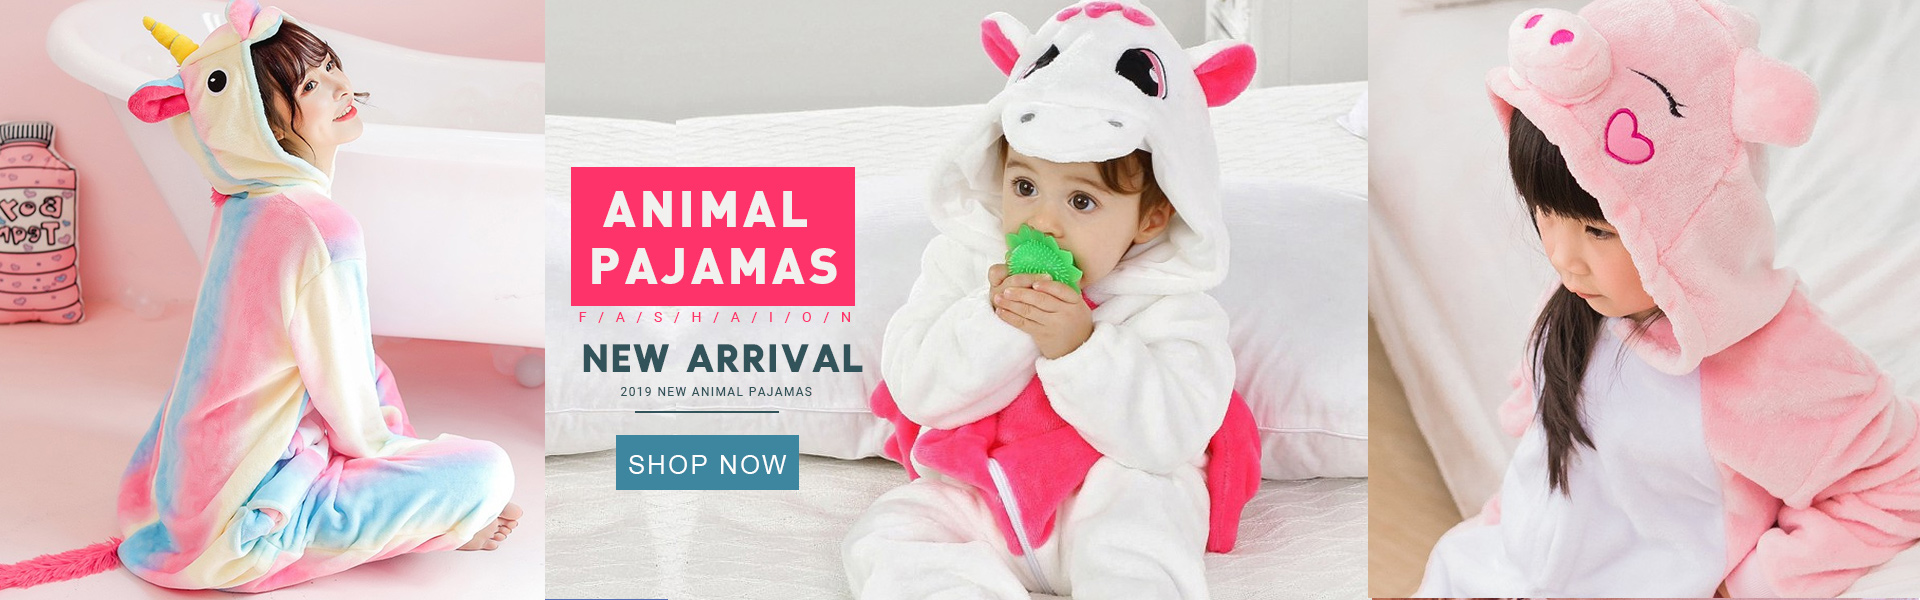 Costumes For Kids, Animal Onesies Pajamas For Boys & Girls, Children Best Animal Costumes - FavoUnicorn.com